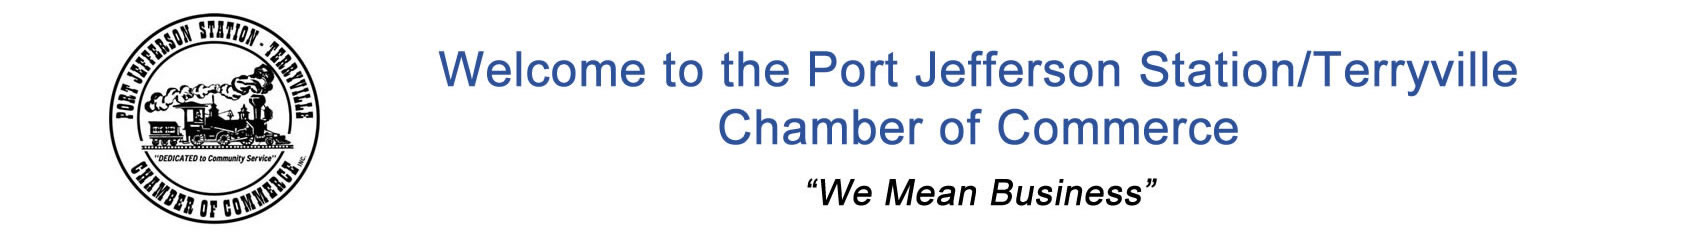 Port Jefferson Terryville Chamber of Commerce